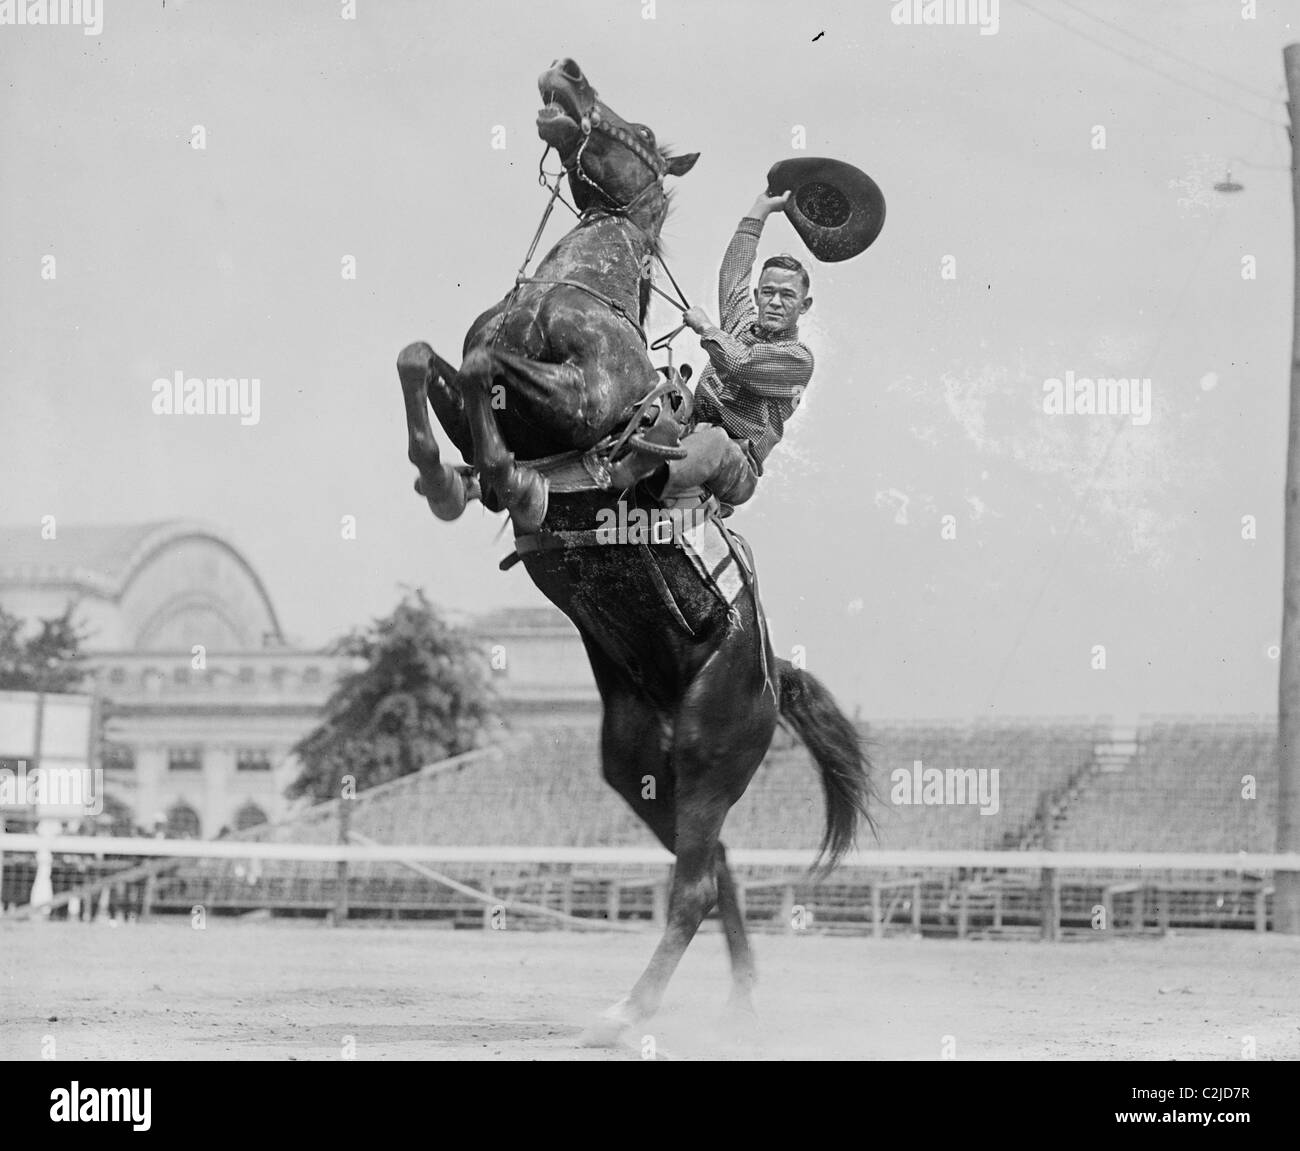 Cowboy Rides Rearing Horse Waves His Hat Stock Photo 36055595 Alamy